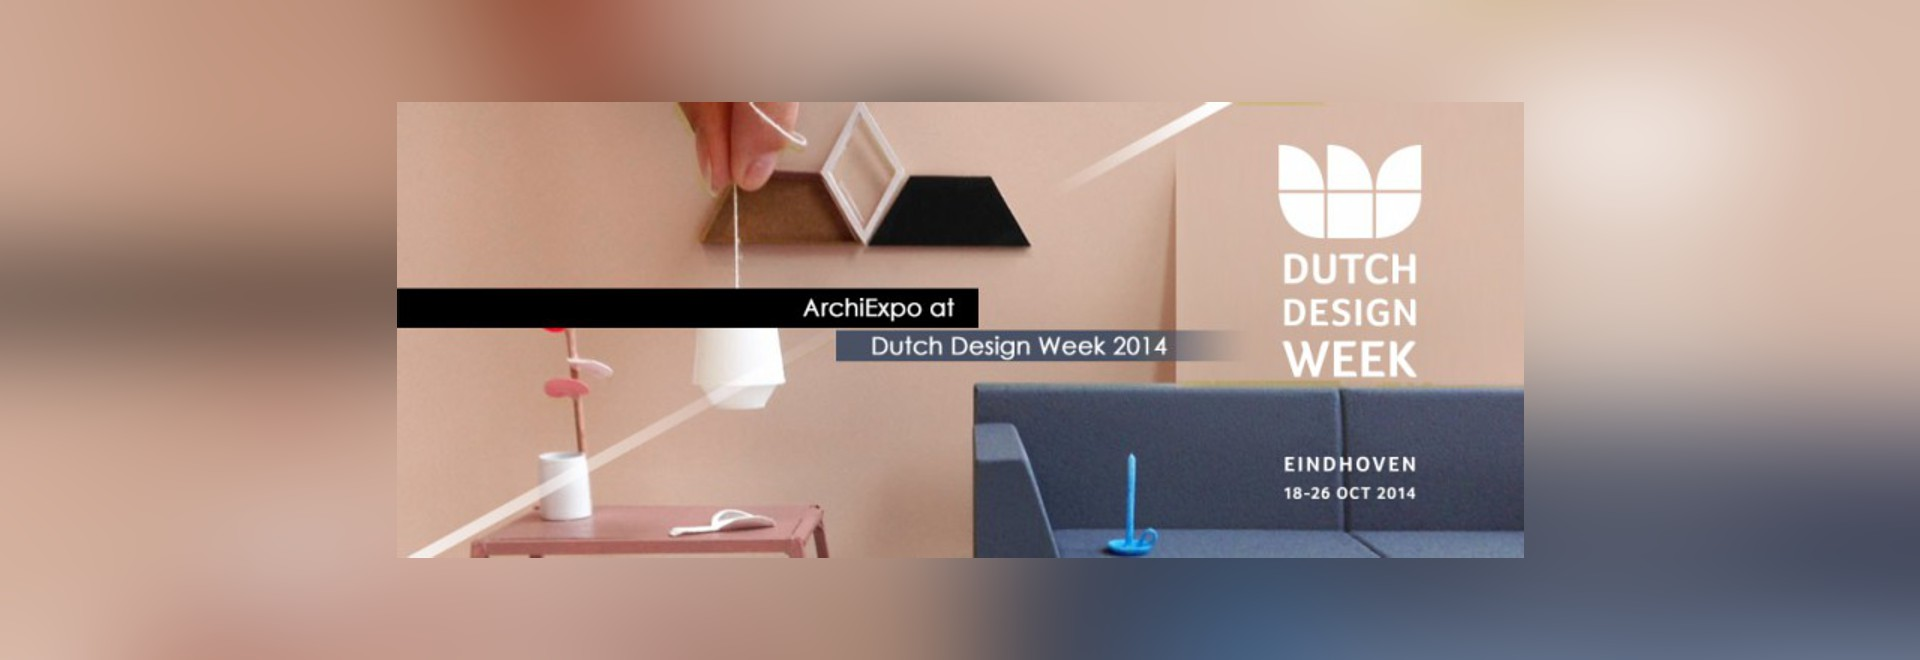 DESIGN FAVORITES FROM EINDHOVEN: PART TWO